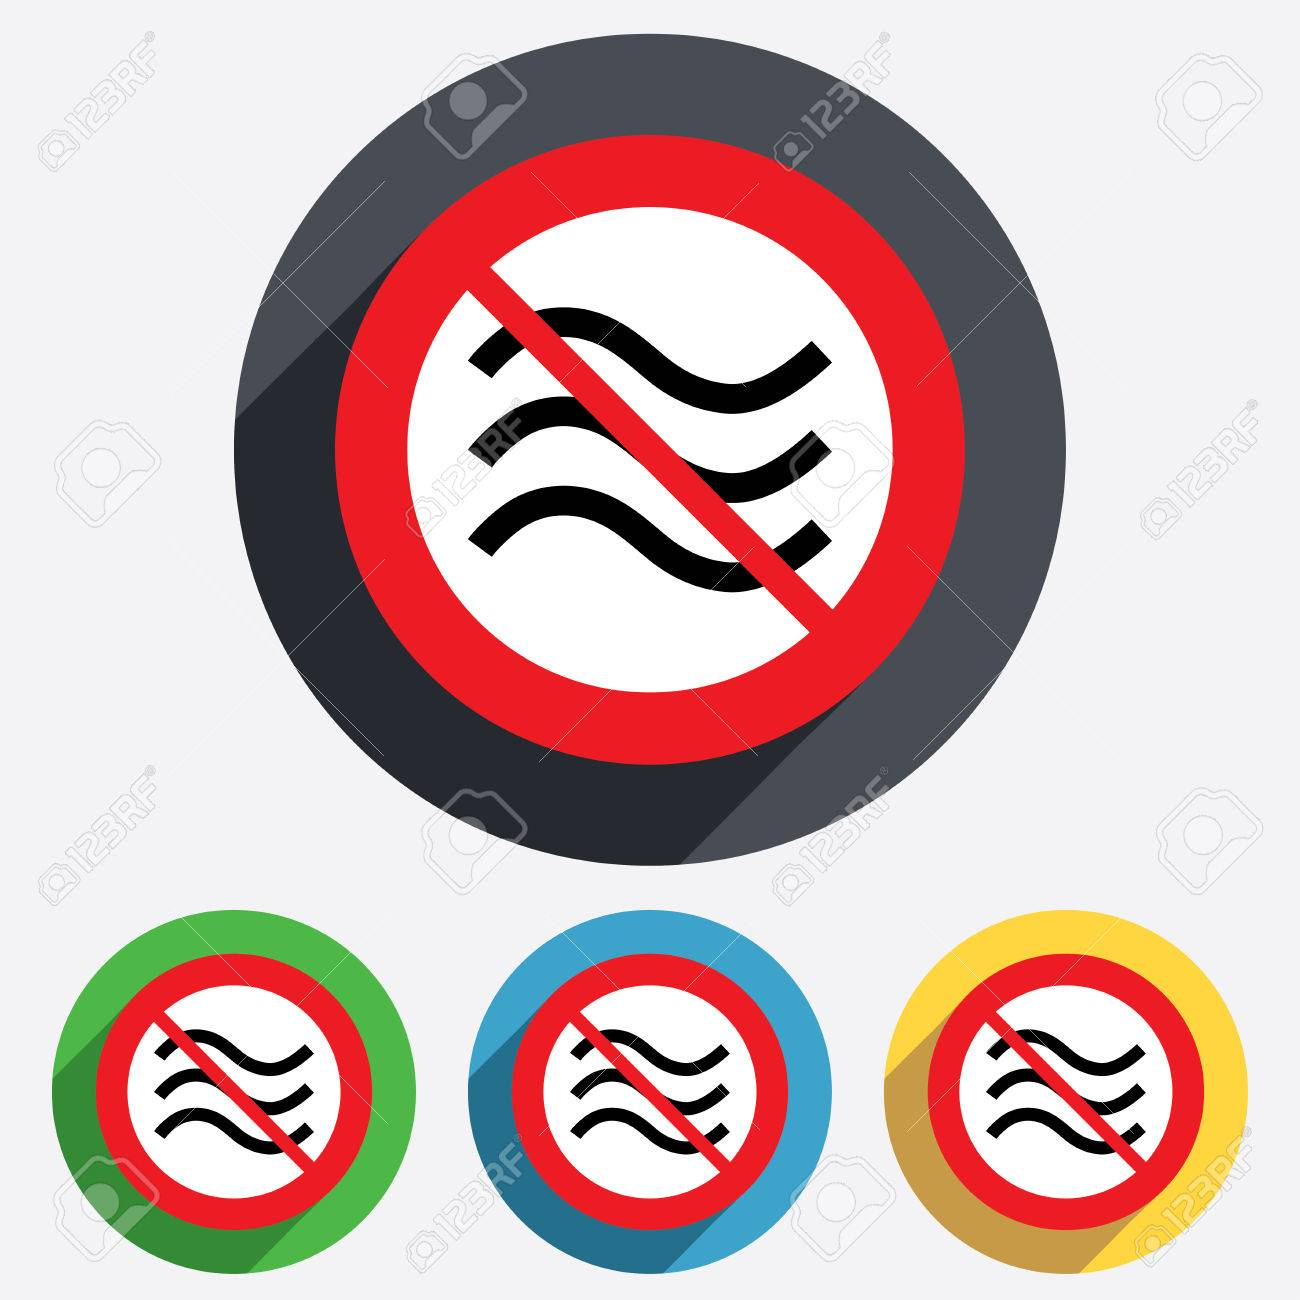 No water waves sign icon do not wash swimming not allowed no water waves sign icon do not wash swimming not allowed flood symbol biocorpaavc